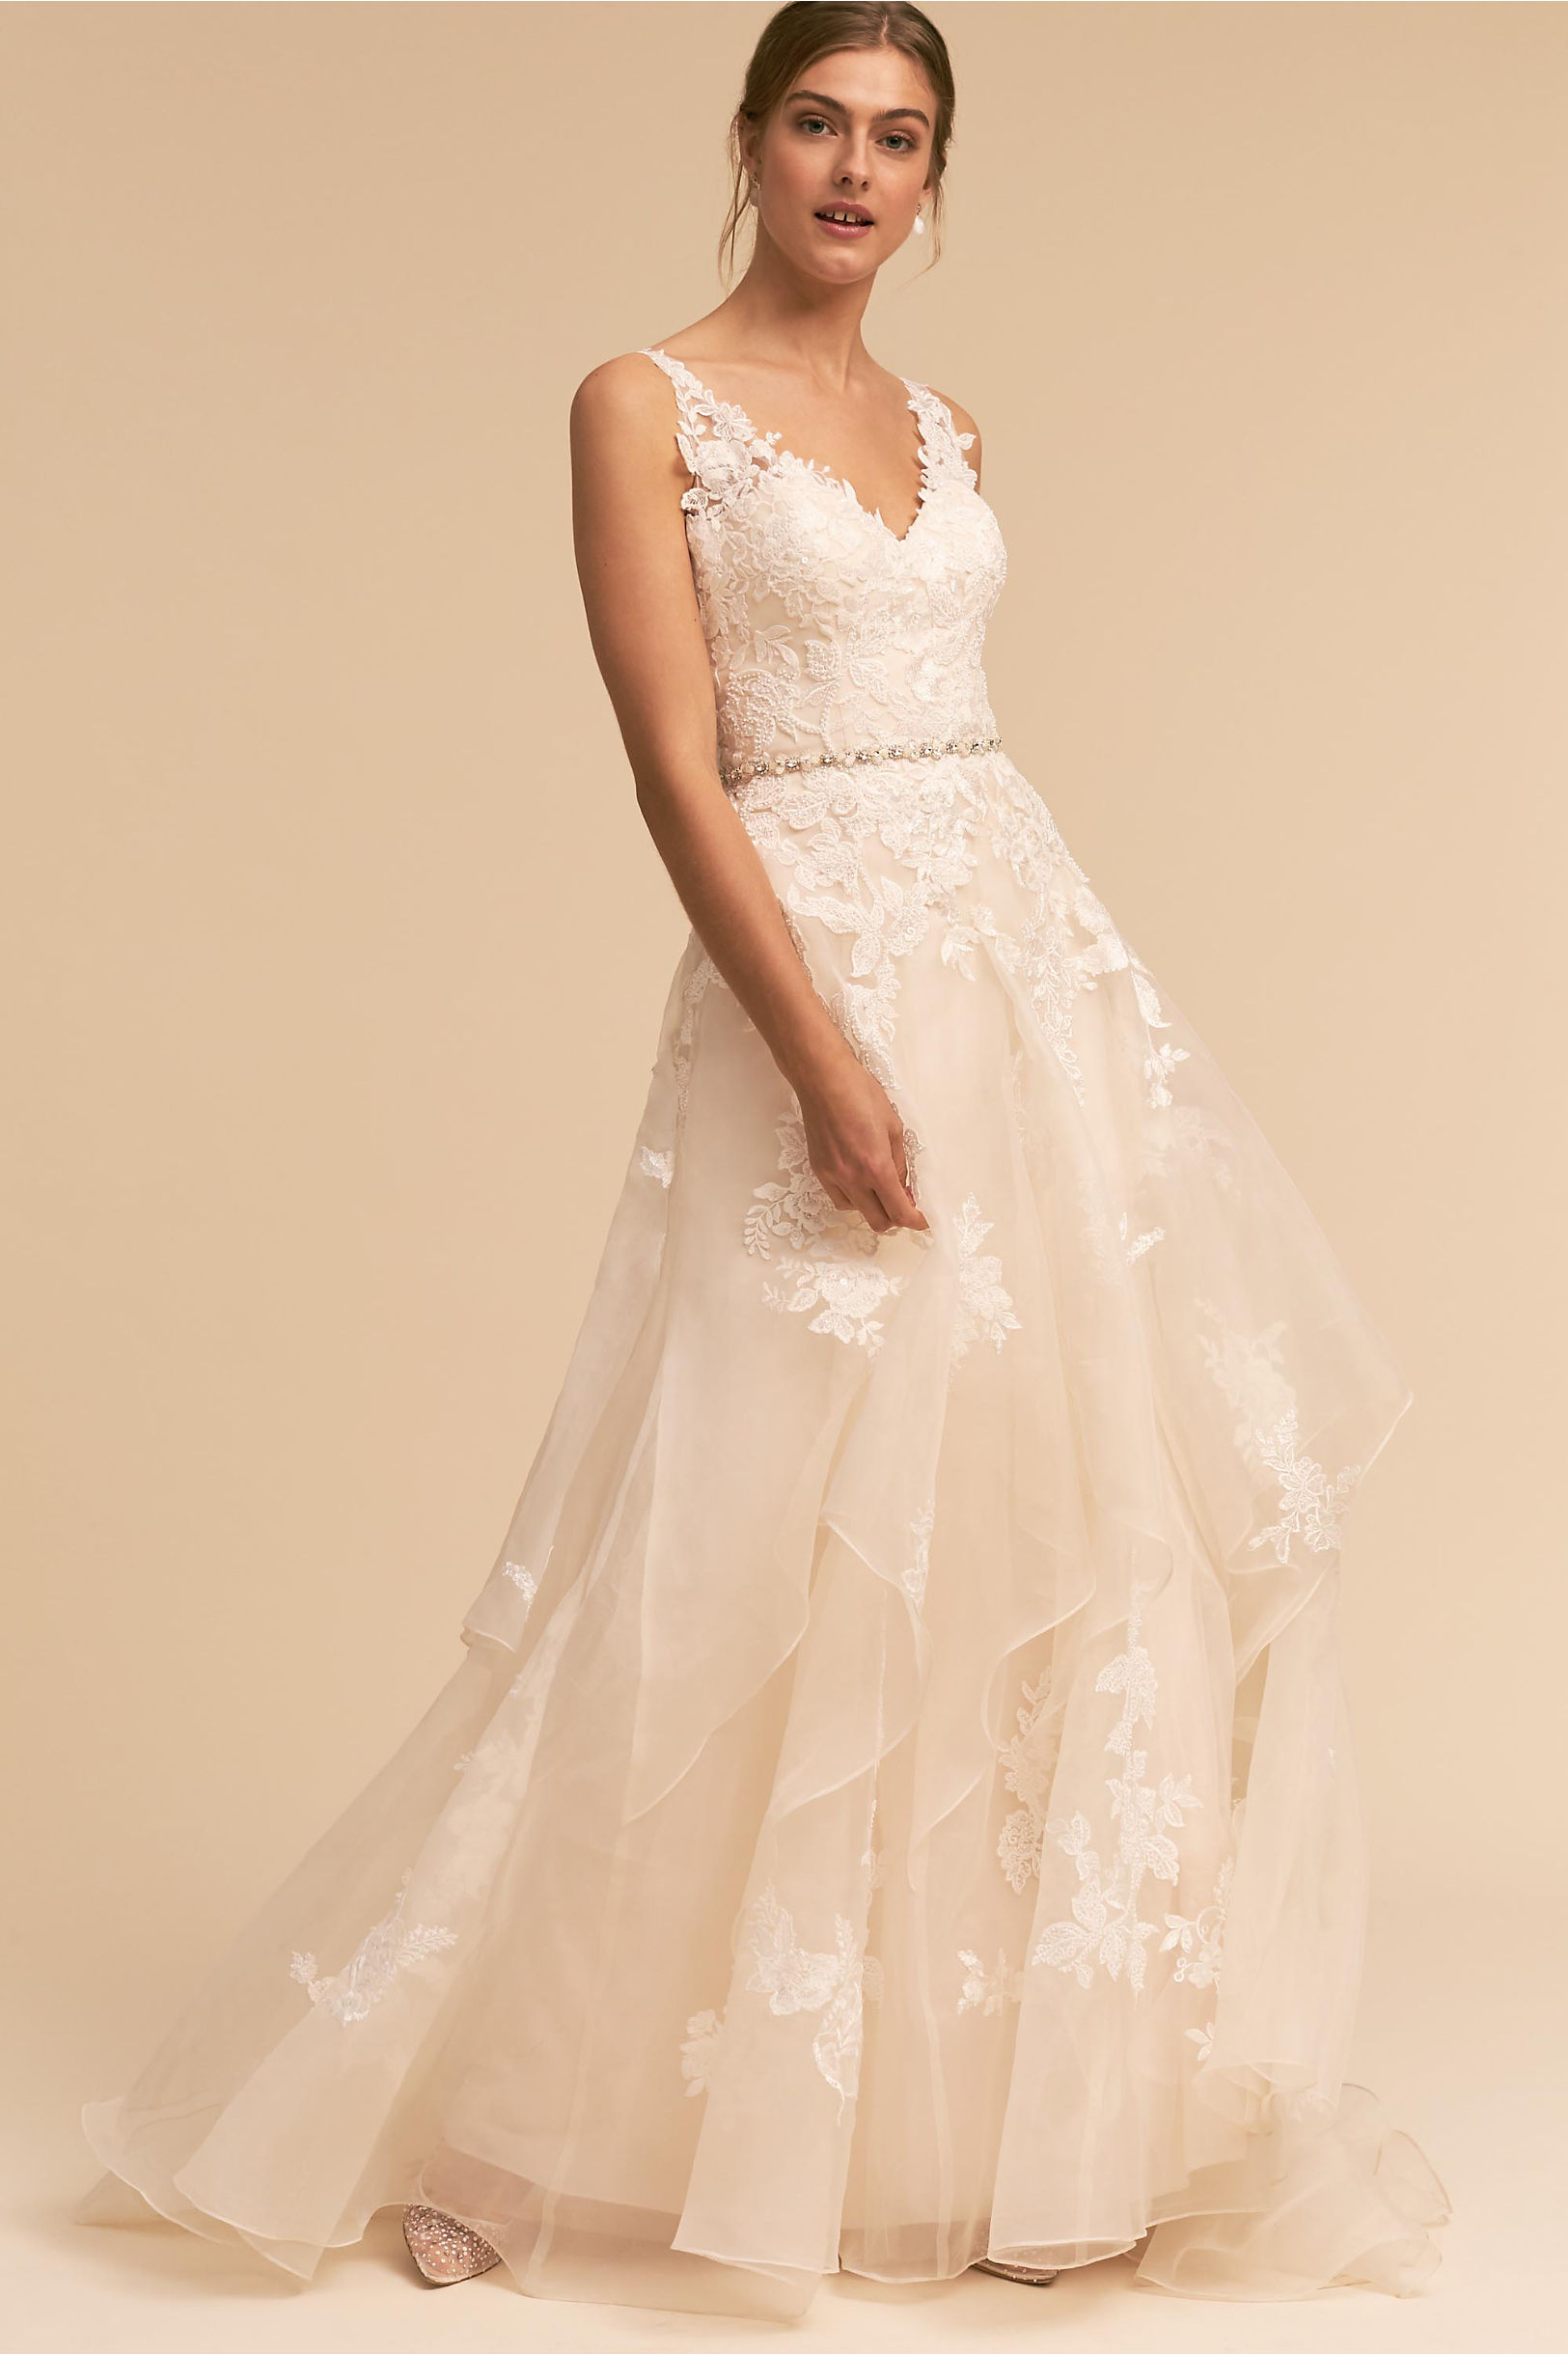 Vintage Inspired Wedding Dress | Vintage Style Wedding Dresses Ever After Gown  AT vintagedancer.com